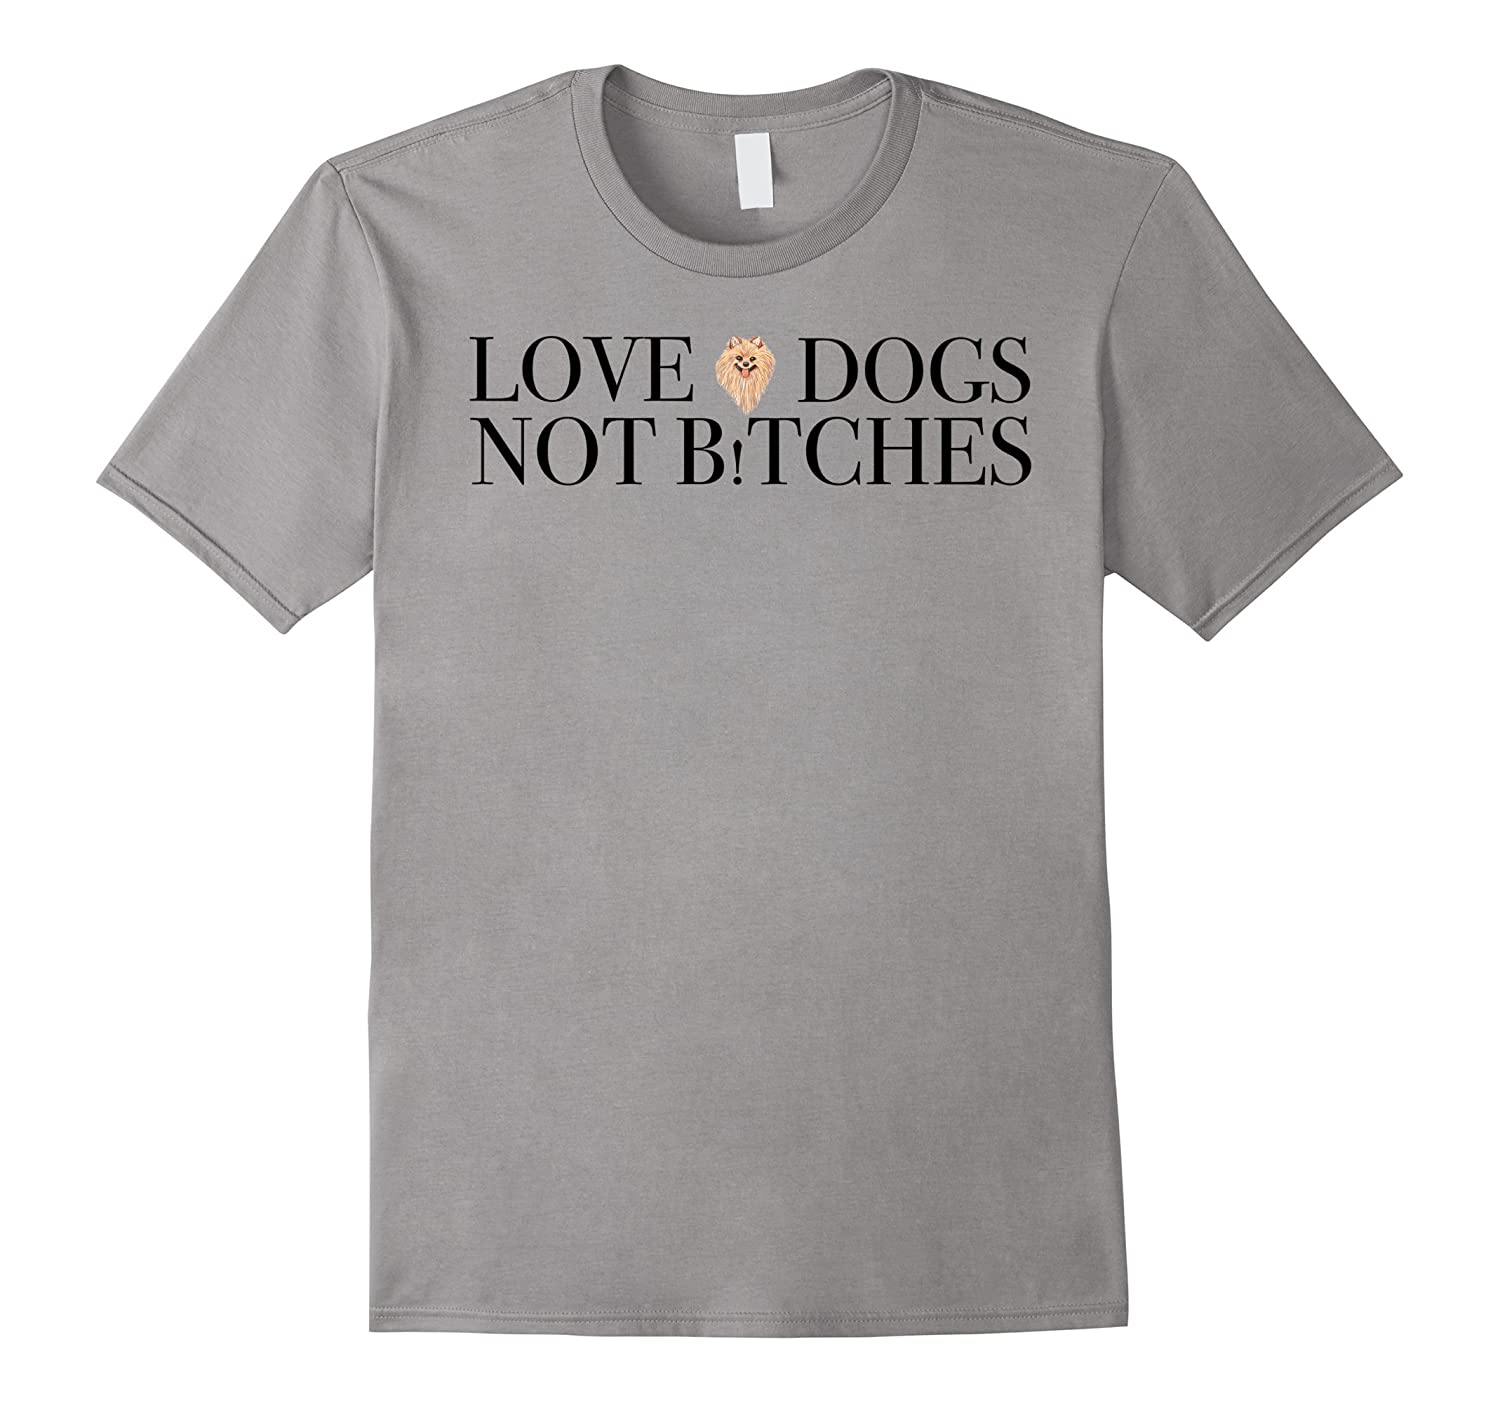 'Love Dogs Not Btches' Funny Dog T-Shirt for Men and Women